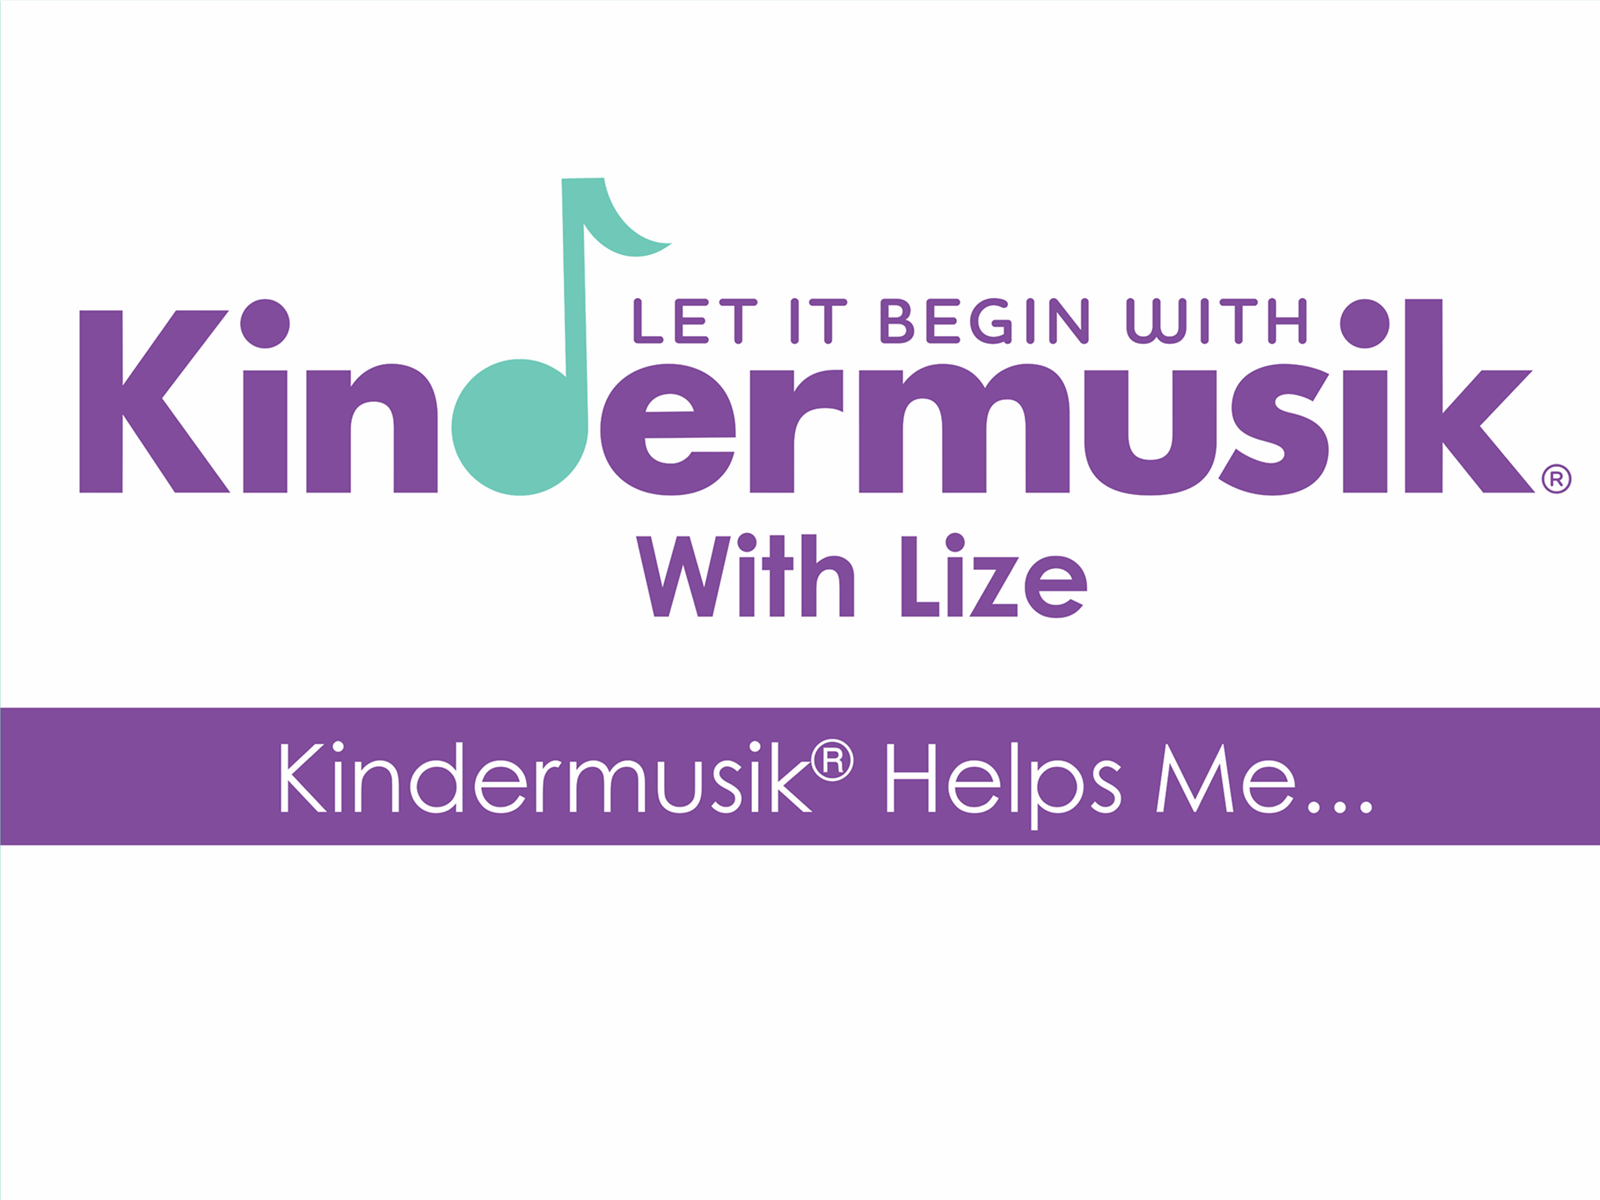 Kindermusiek with Lize – Pullup banner